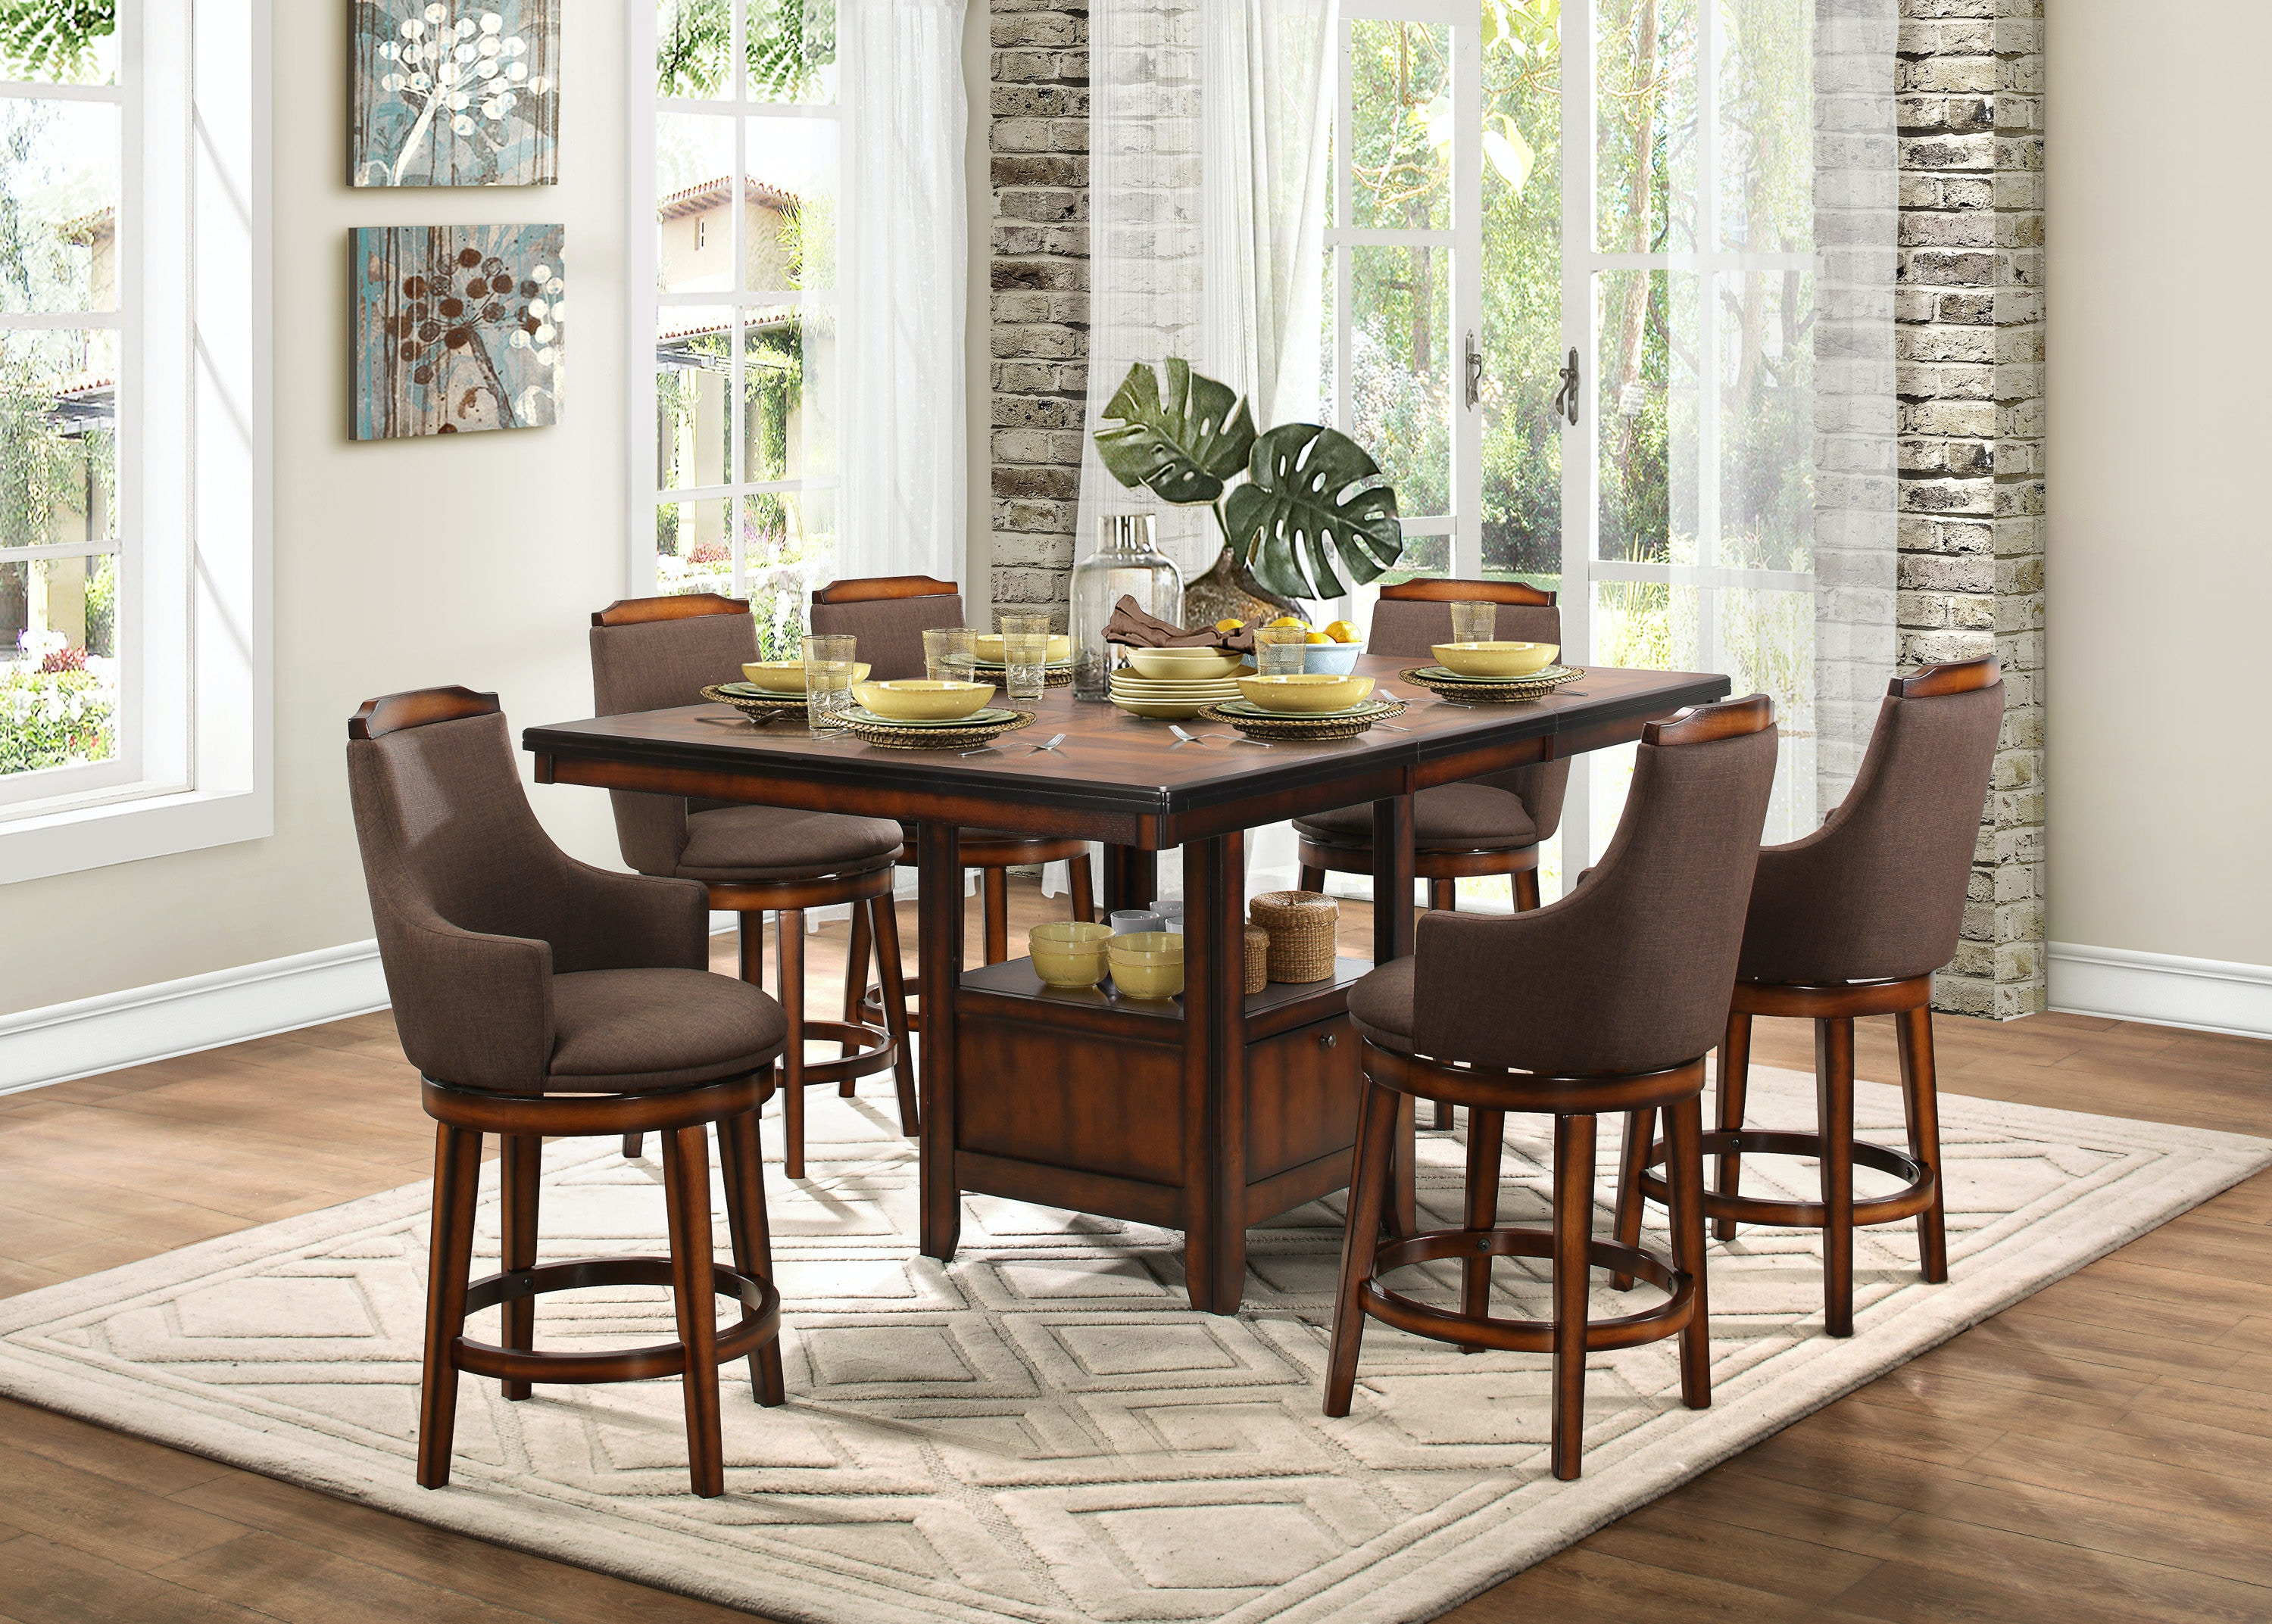 homelegance dining room 1 2 counter height table top 5447 36xl